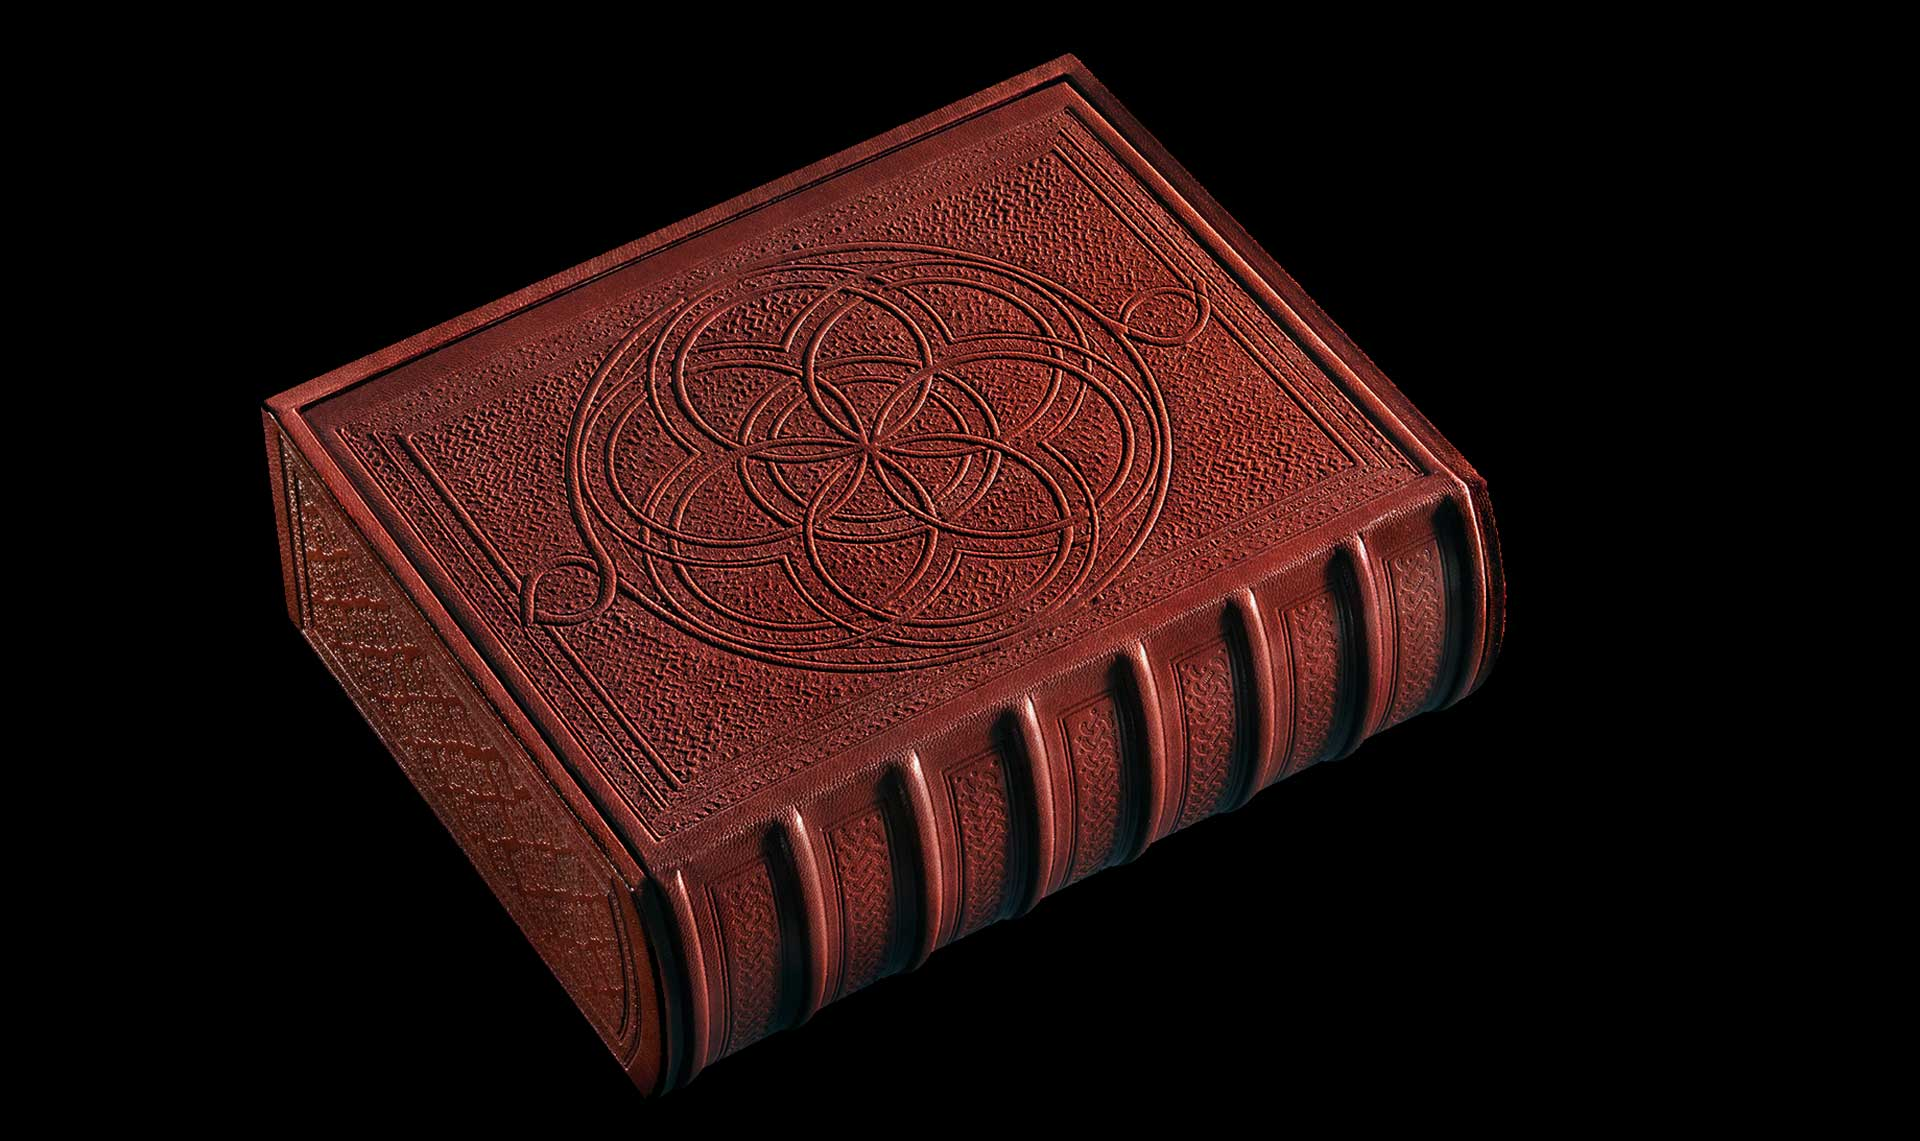 """The Mudejar binding is unique to Hebrew manuscripts. Only six box-bindings of this type exist today.  <small><a href=""""https://www.facsimile-editions.com/copyright/"""">© Copyright 2021 Facsimile Editions Ltd</a></small>"""